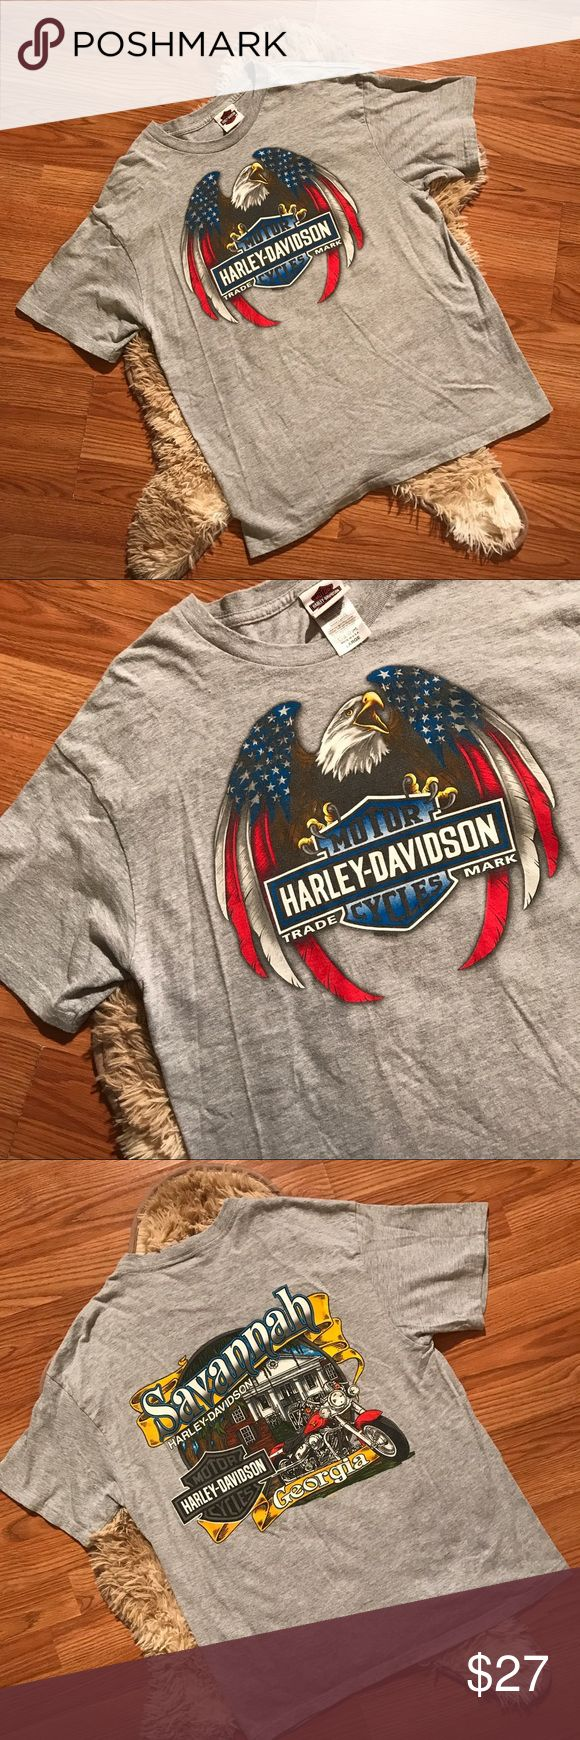 Vintage • gray HARLEY DAVIDSON graphic  t-shirt Vintage medium gray colorful HARLEY DAVIDSON of SAVANNAH GEORGIA graphic t-shirt  Size larg —True to size!  Great condition — nothing wrong no defects or flaws Could fit. Medium as well, quality made thicker cotton feel  Like all other tees, Rare to see one gray like this. Comfortable & broken in    #vintage #vtg #Harley #harleydavidson #motorcycle #biker #harley #savannah #cybermonday #gift #present #sale #freeship Harley-Davidson Shirts Tees…